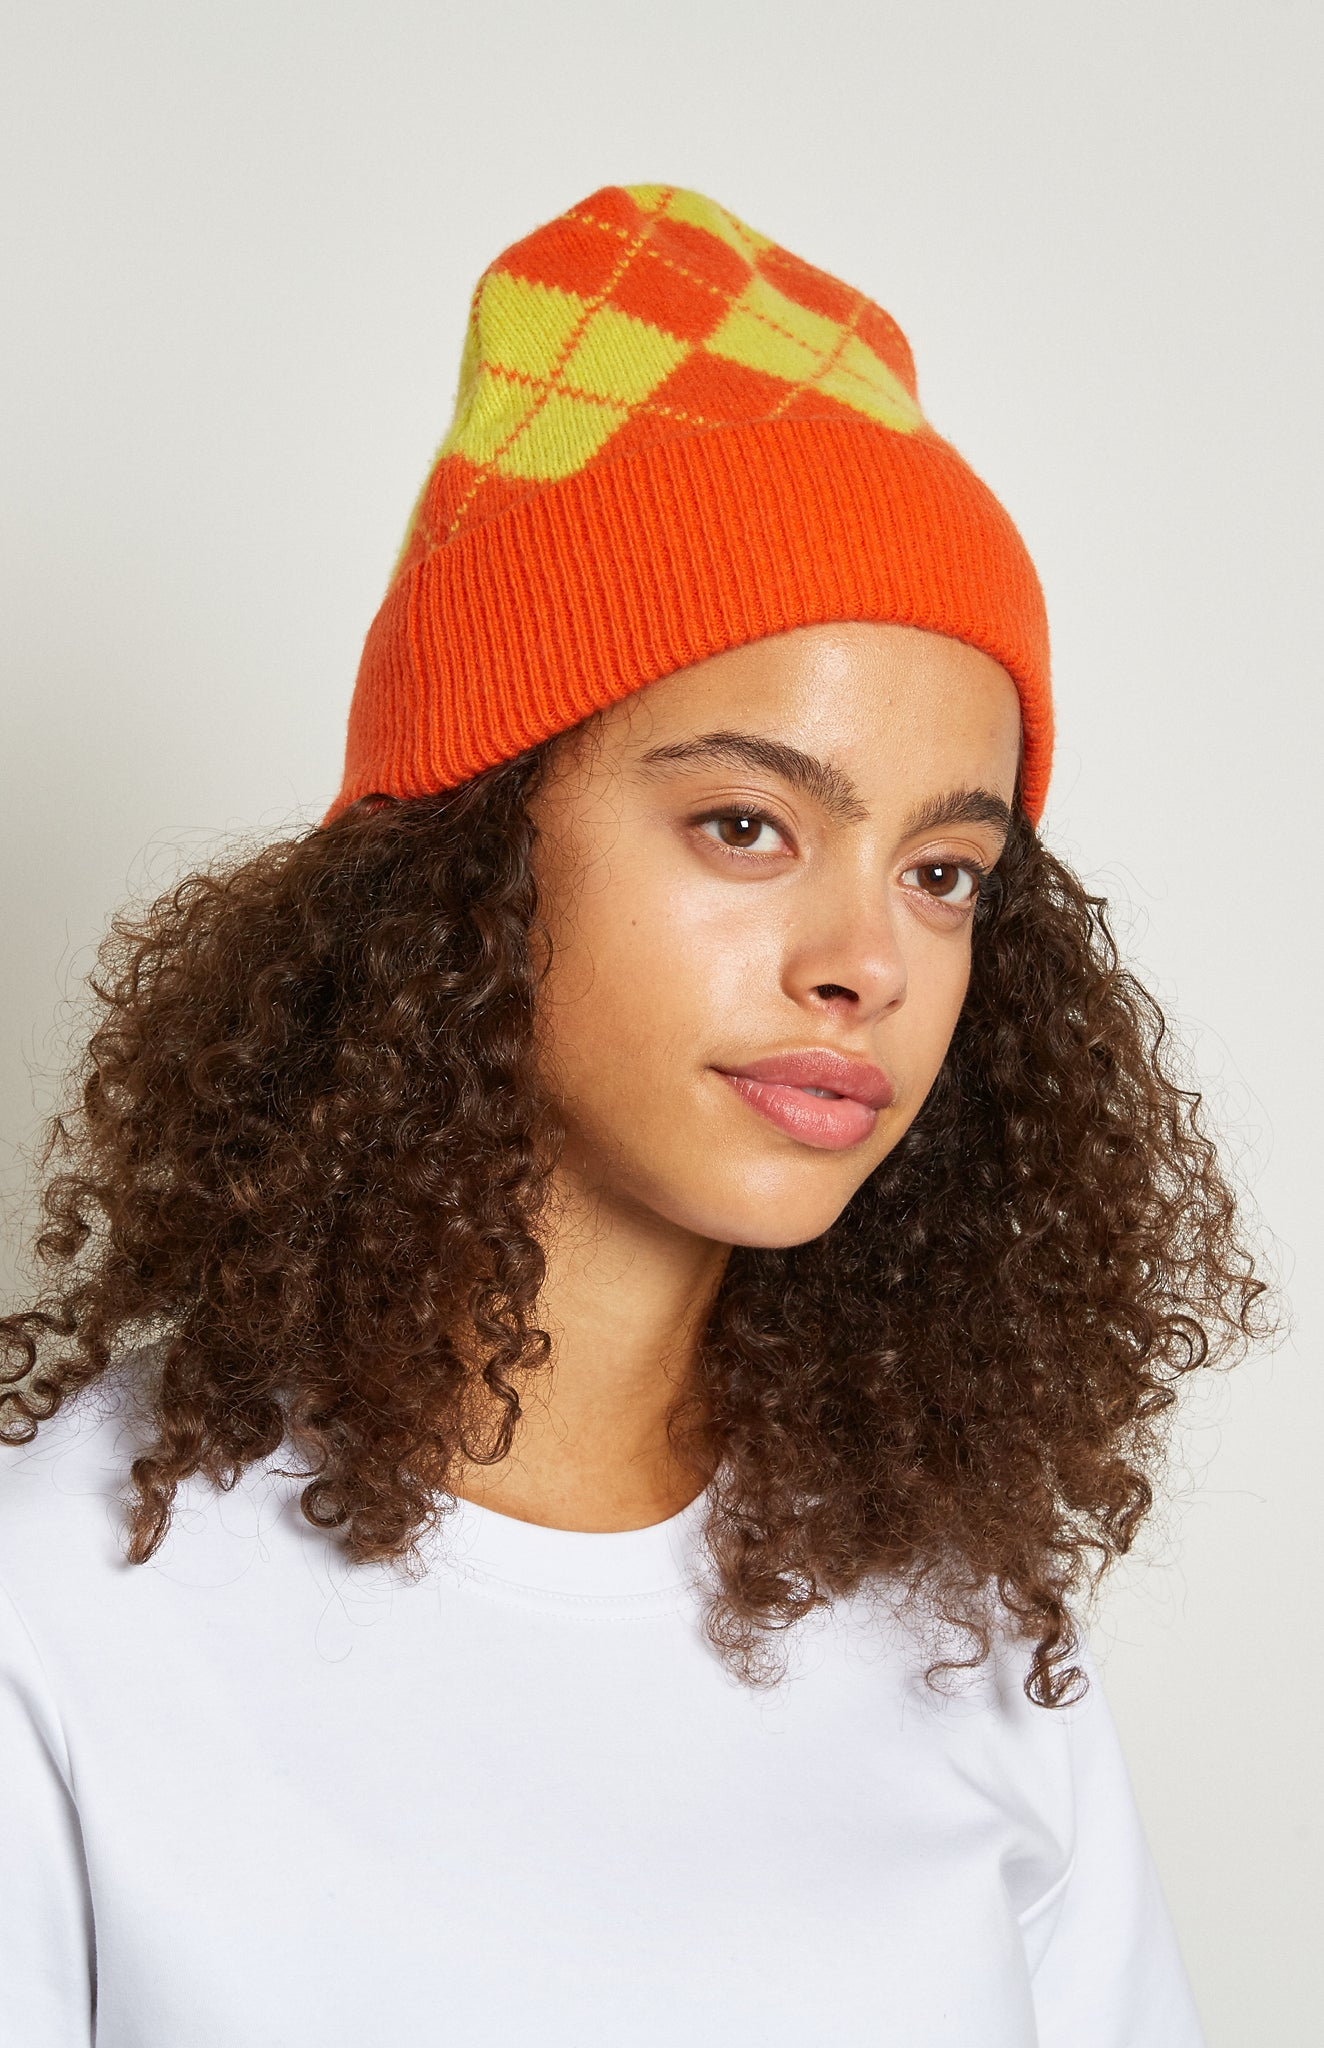 Pringle Reissued Unisex Two Tone Argyle Beanie Hat In ORANGE